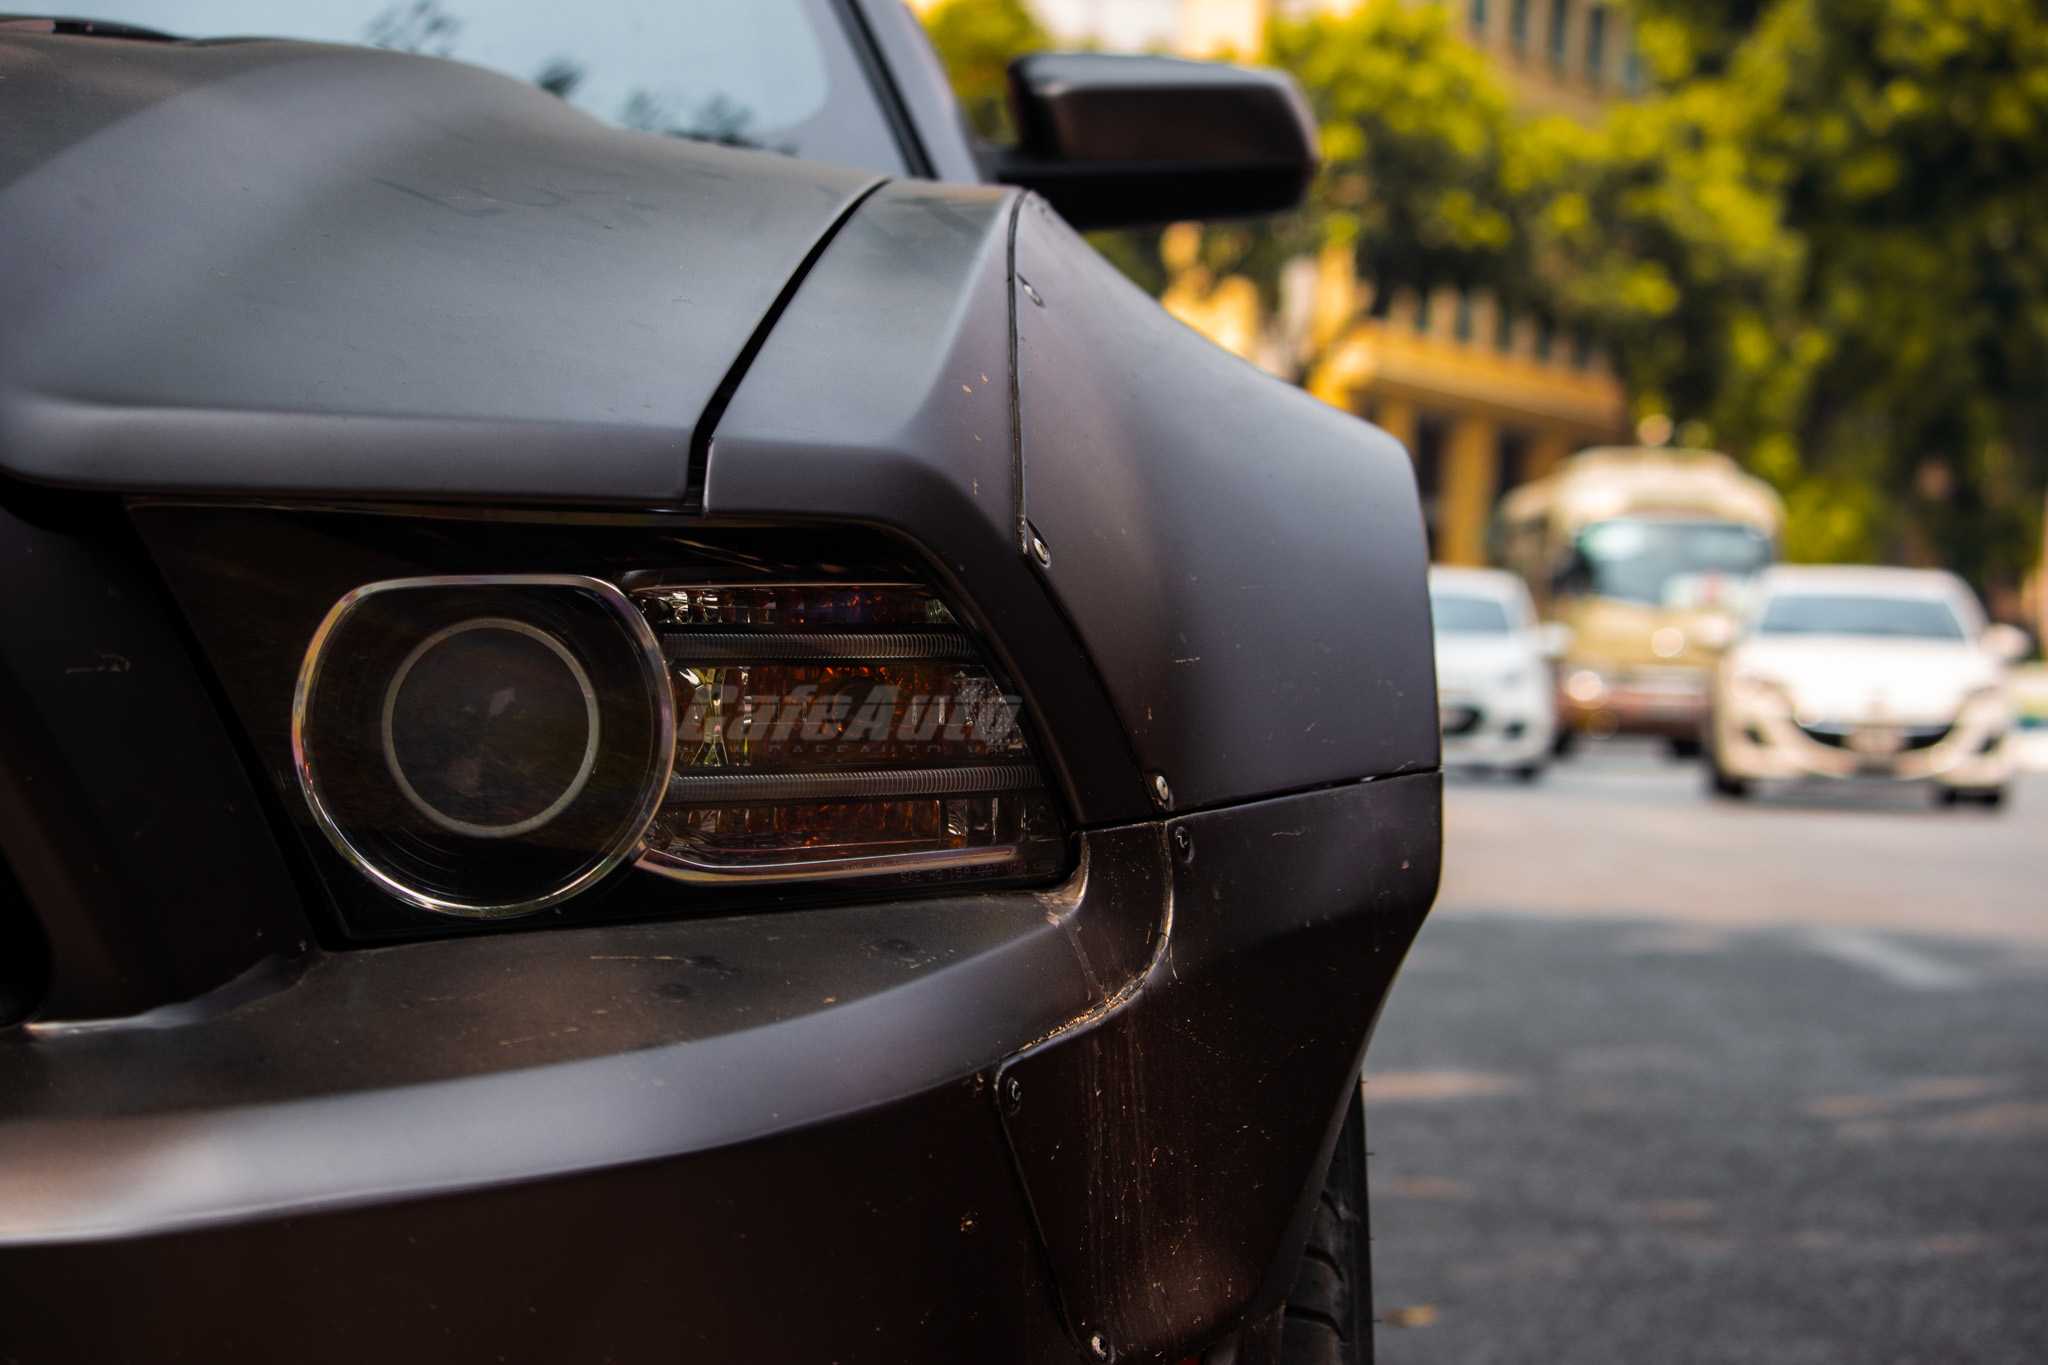 mustangGT-cafeautovn-8